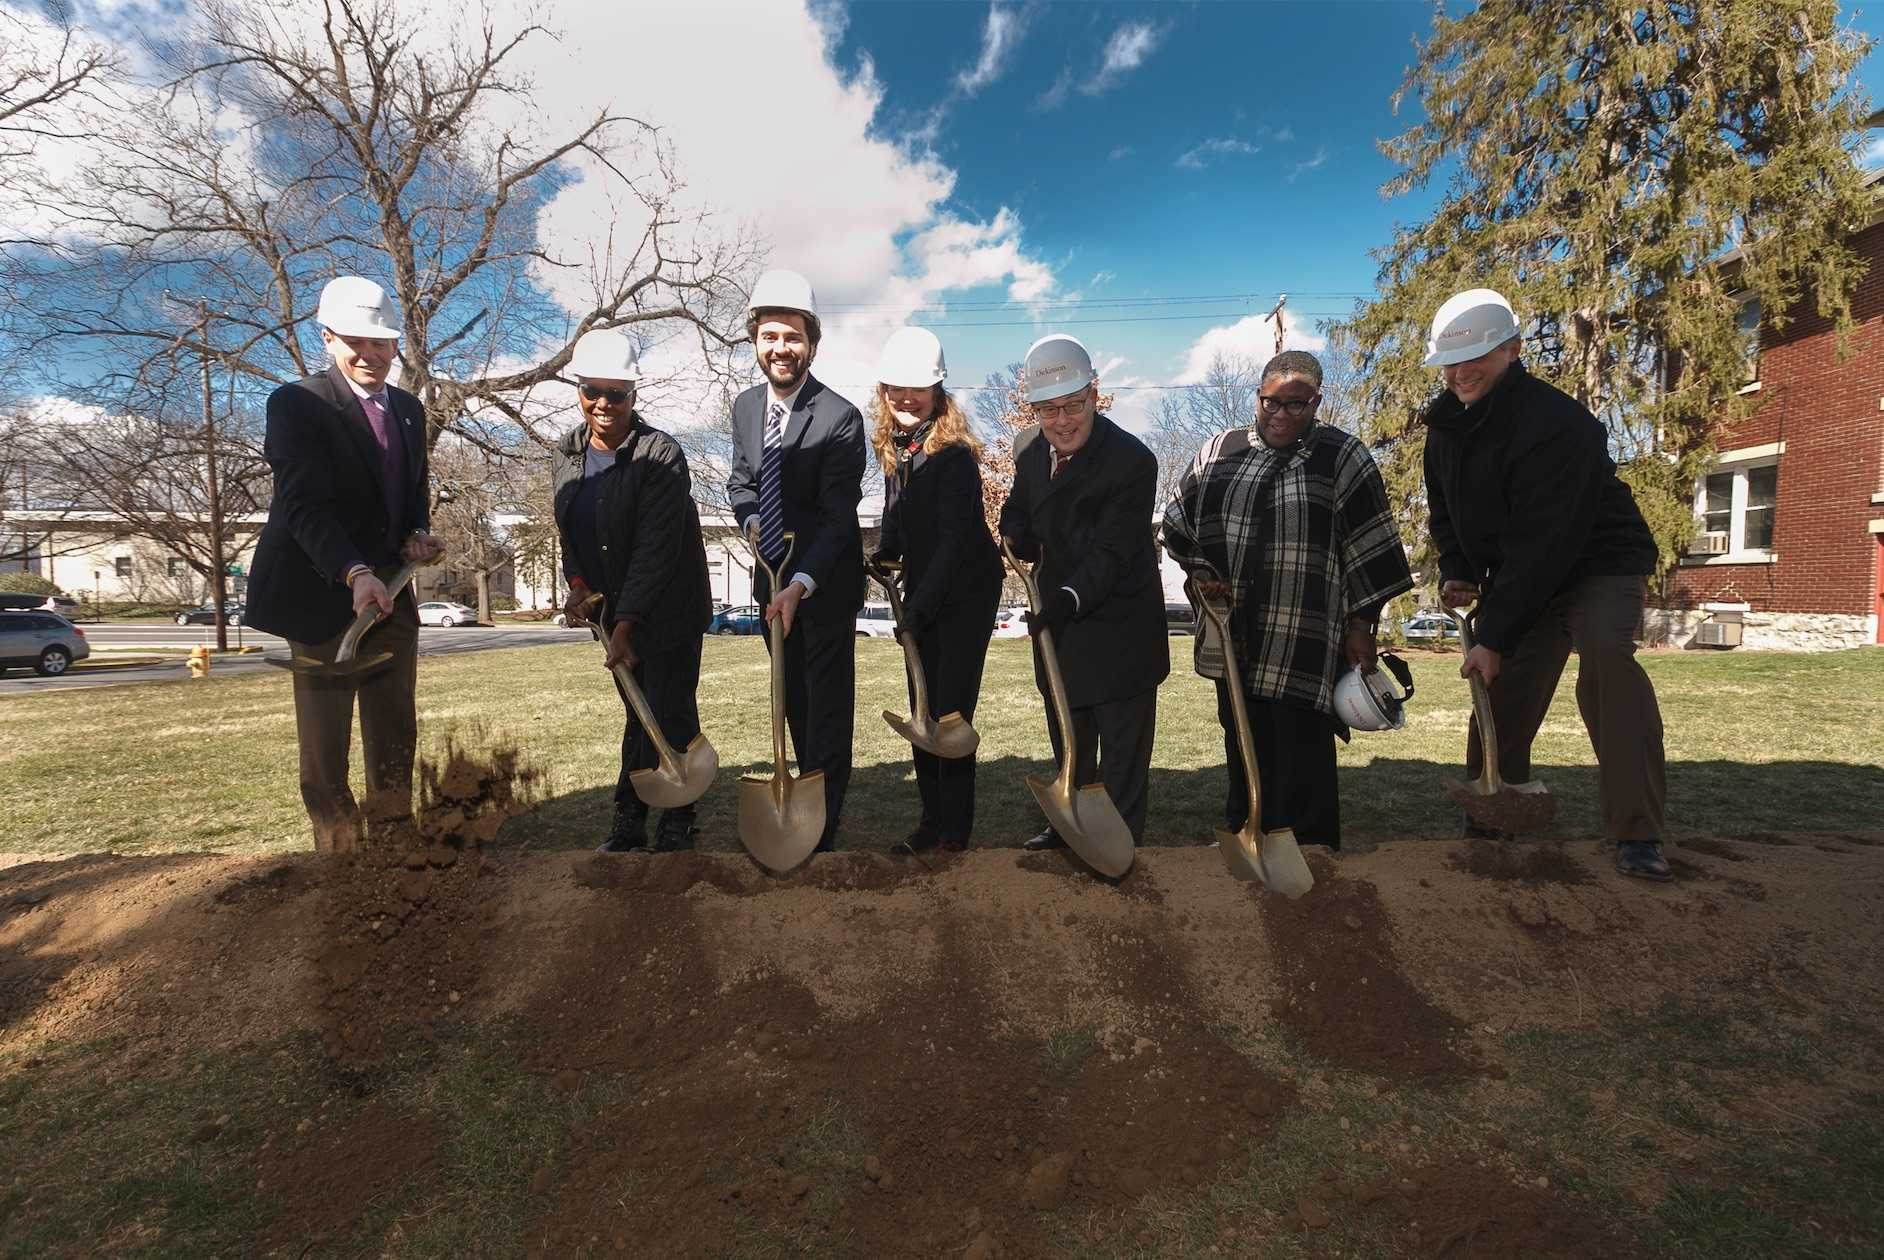 The groundbreaking took place on March 2.